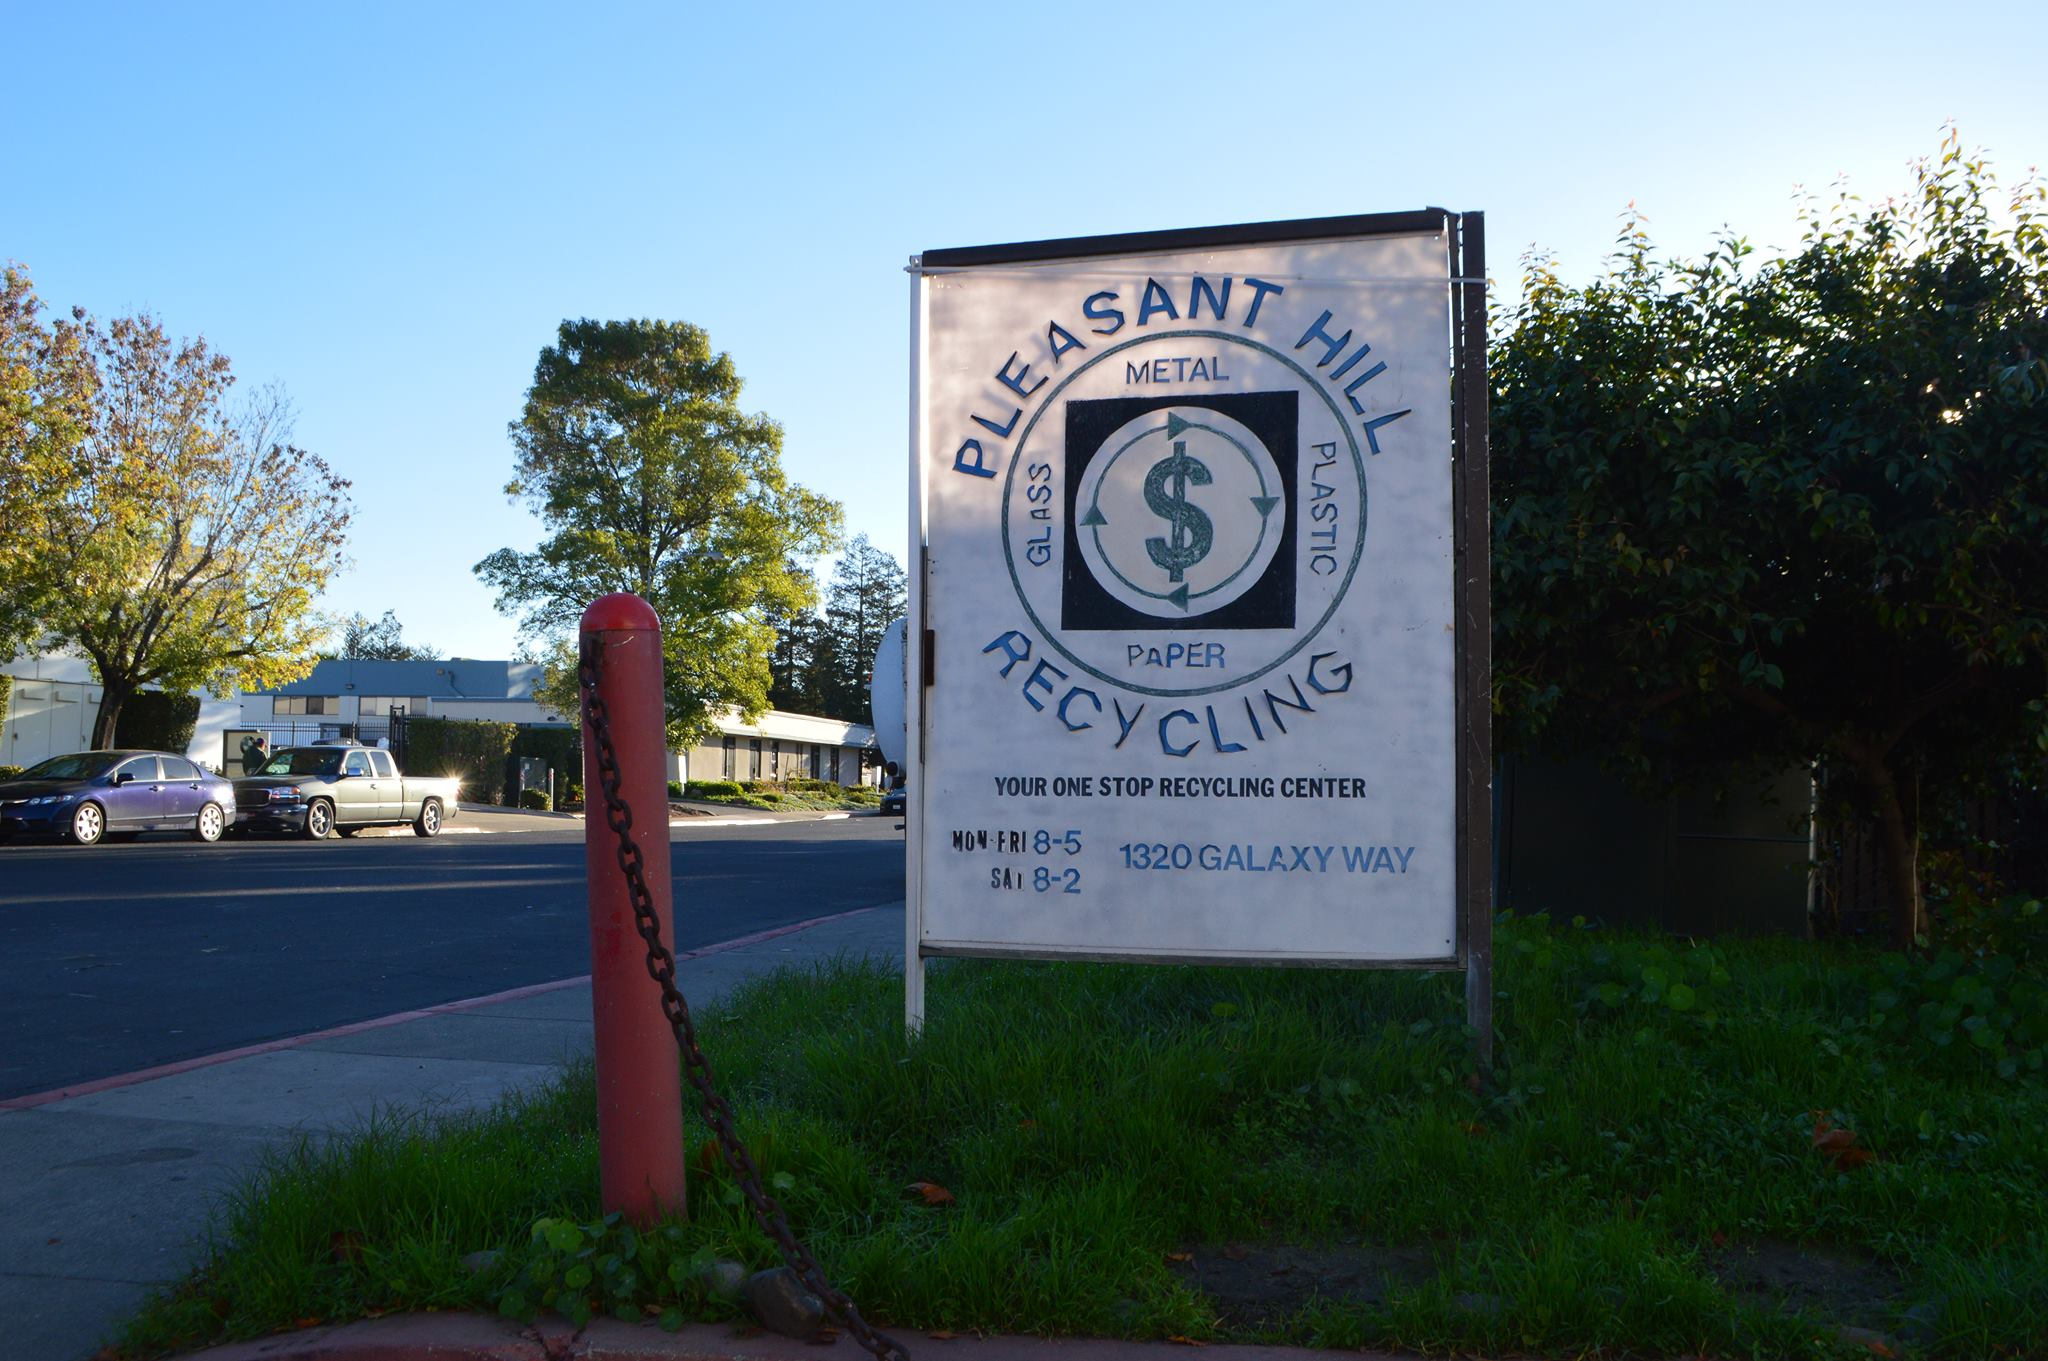 Concord Recycling Center - Concord, CA - East Bay Area